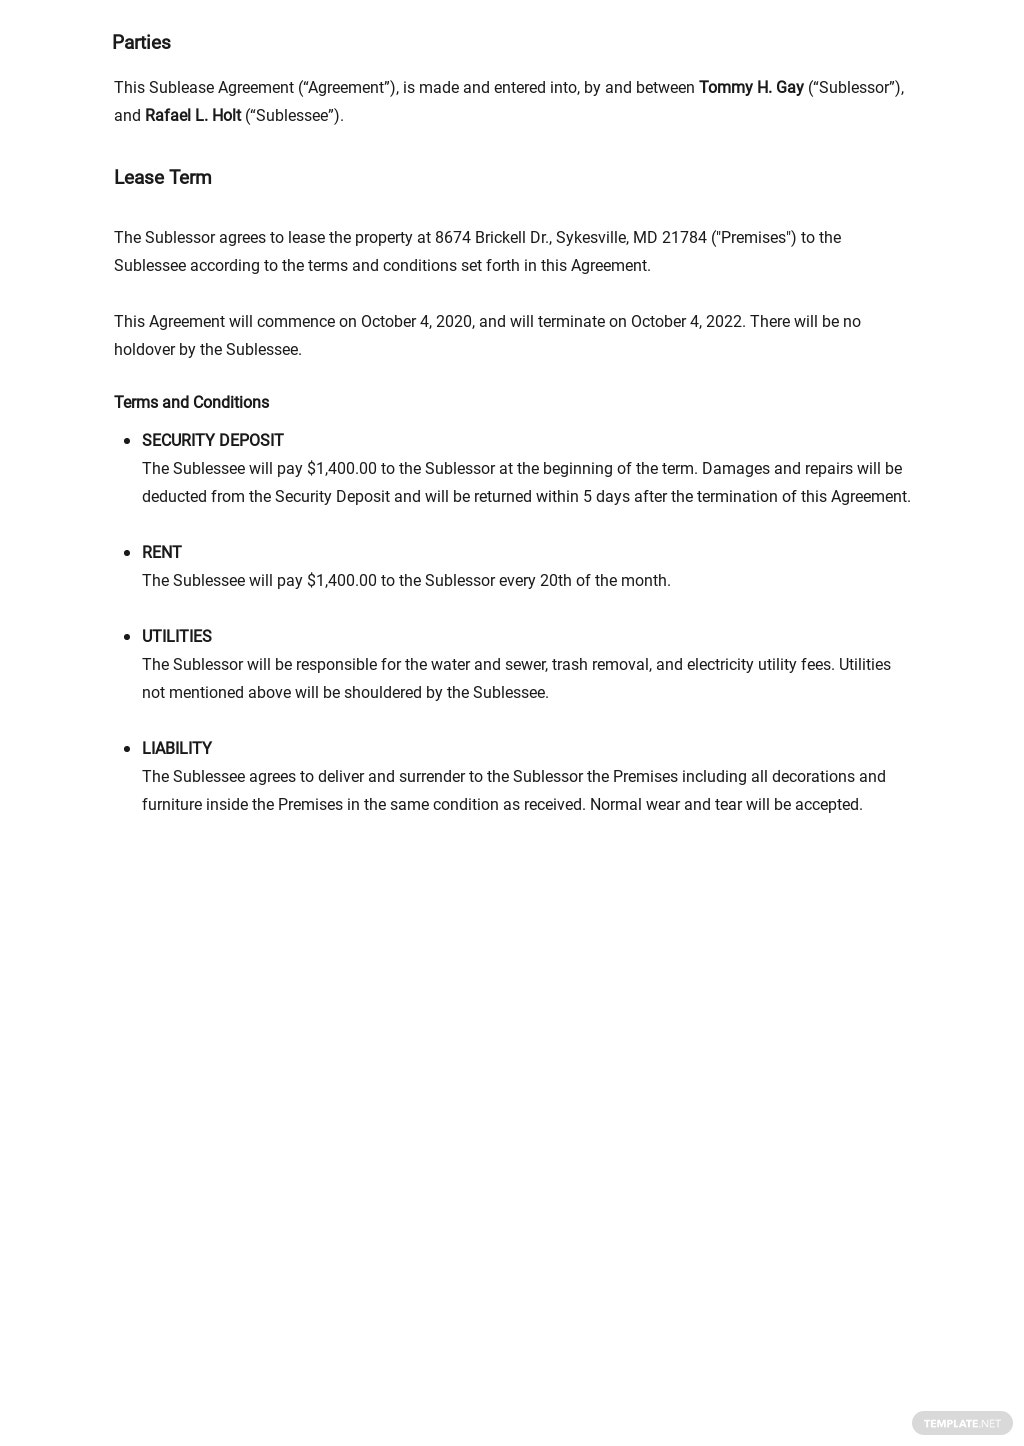 Sublease Agreement Template 1.jpe